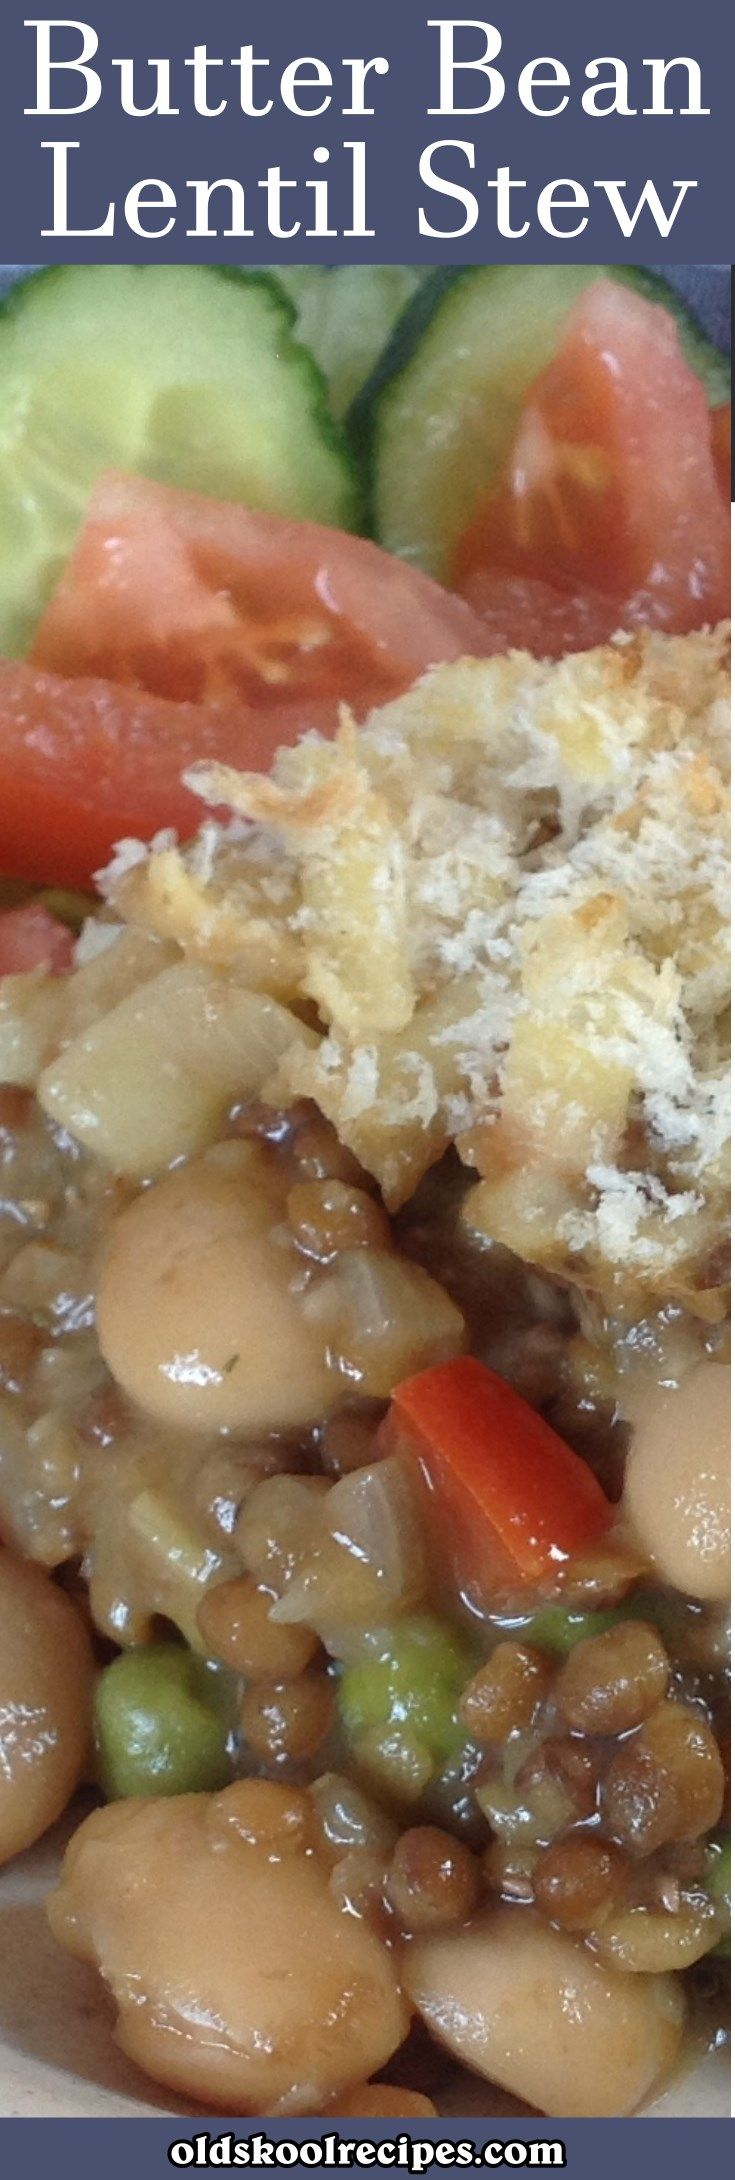 Butter Bean Lentil Stew Recipe - Old Skool Recipes This can be Vegan dish by using dairy free cheese instead of Cheddar cheese. Butter beans and lentils makes a healthy meal in minutes. Use your imagination and add some other vegetable as well. A ideal midweek dinner.